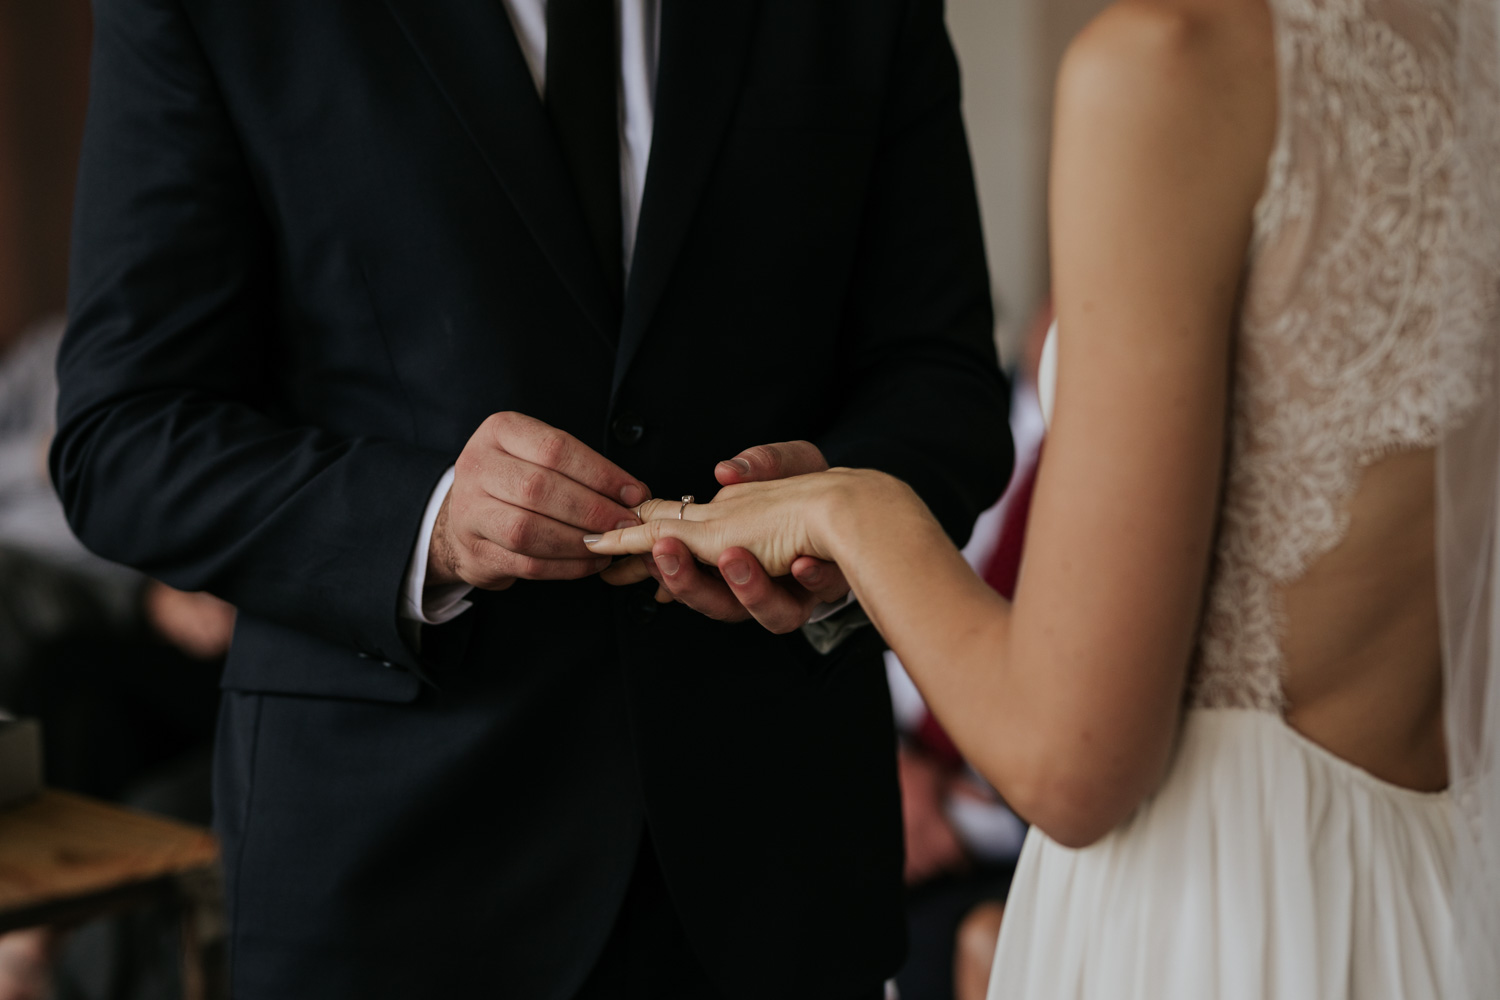 Grooms Puts Wedding Ring On Bride's Finger In Vancouver City Wedding Ceremony